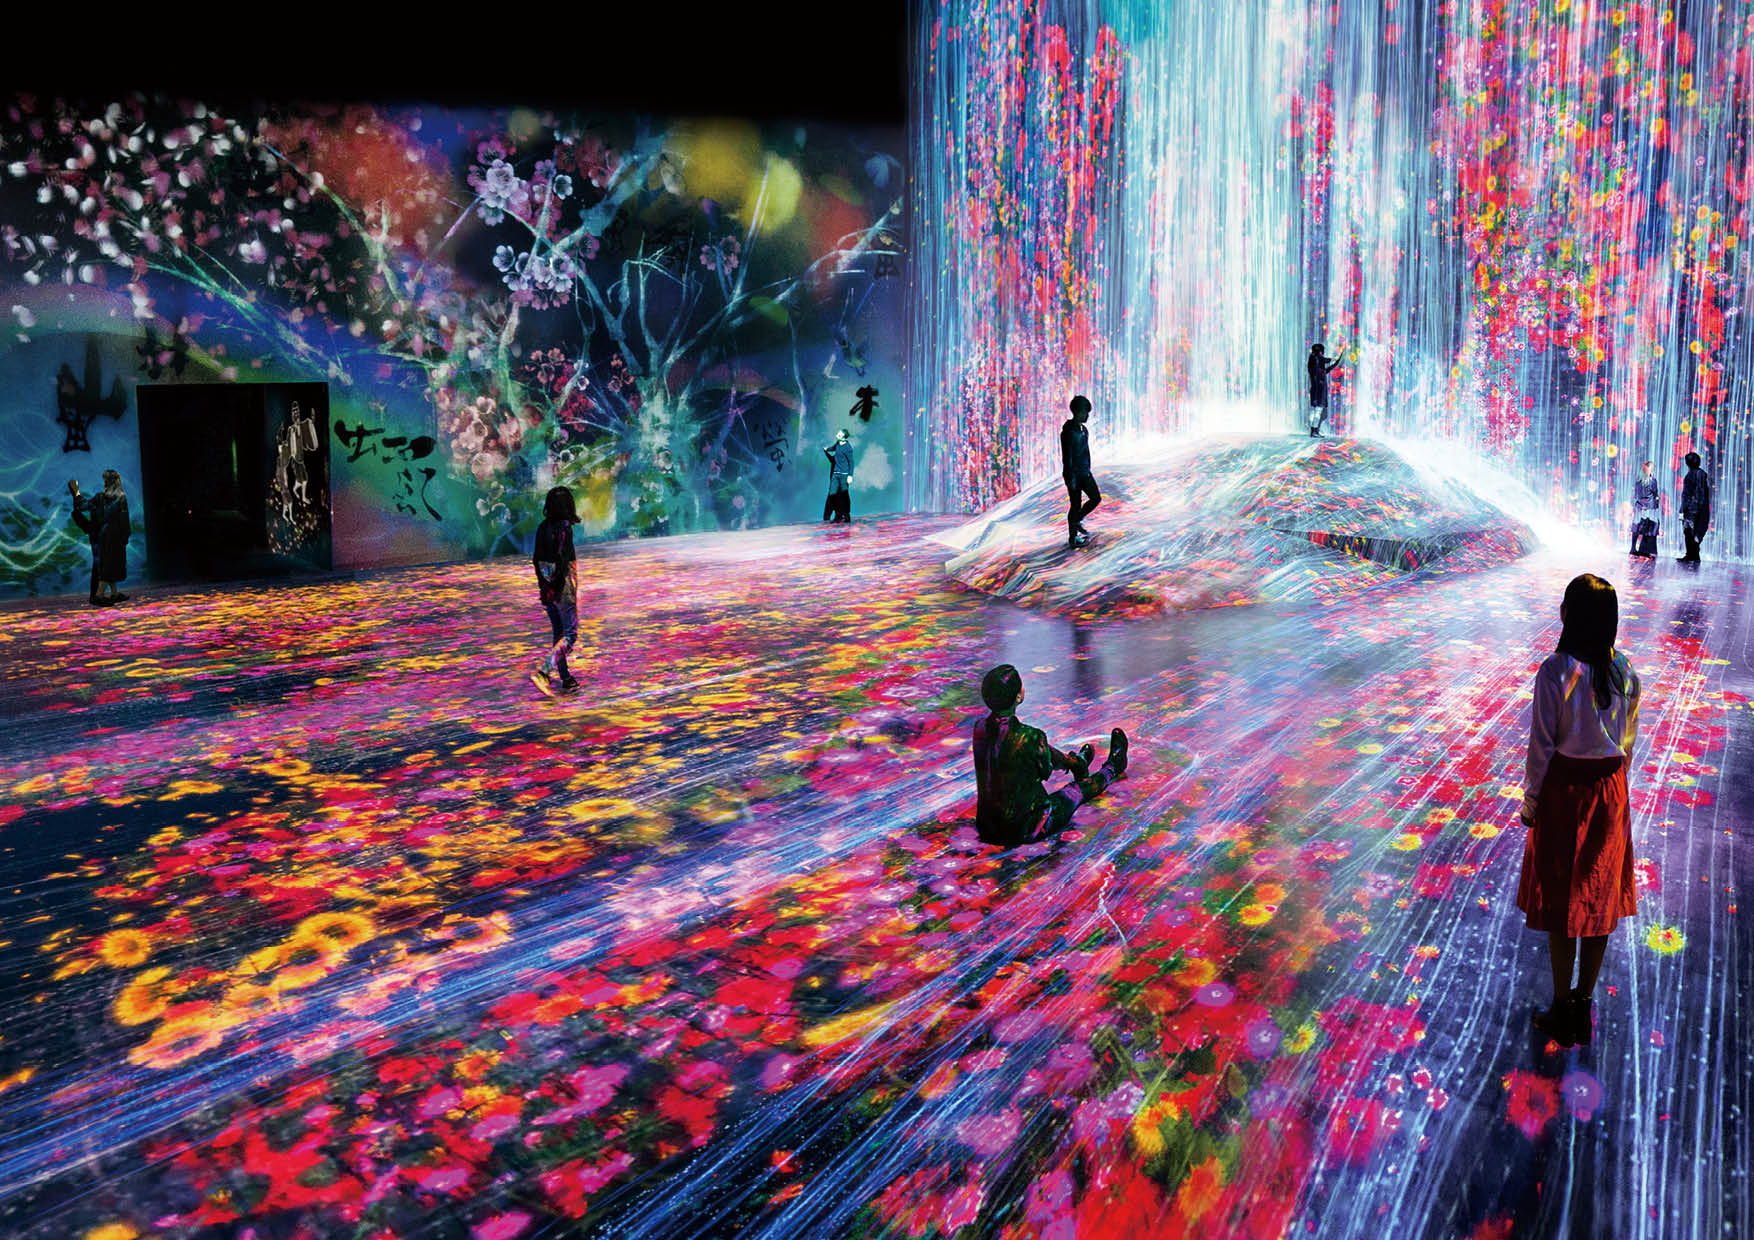 森ビル デジタルアート ミュージアム:エプソン チームラボボーダレス MORI Building DIGITAL ART MUSEUM EPSON teamLab Borderless Main_Borderlesswaorl_takihana_2_3_high hbsdhds